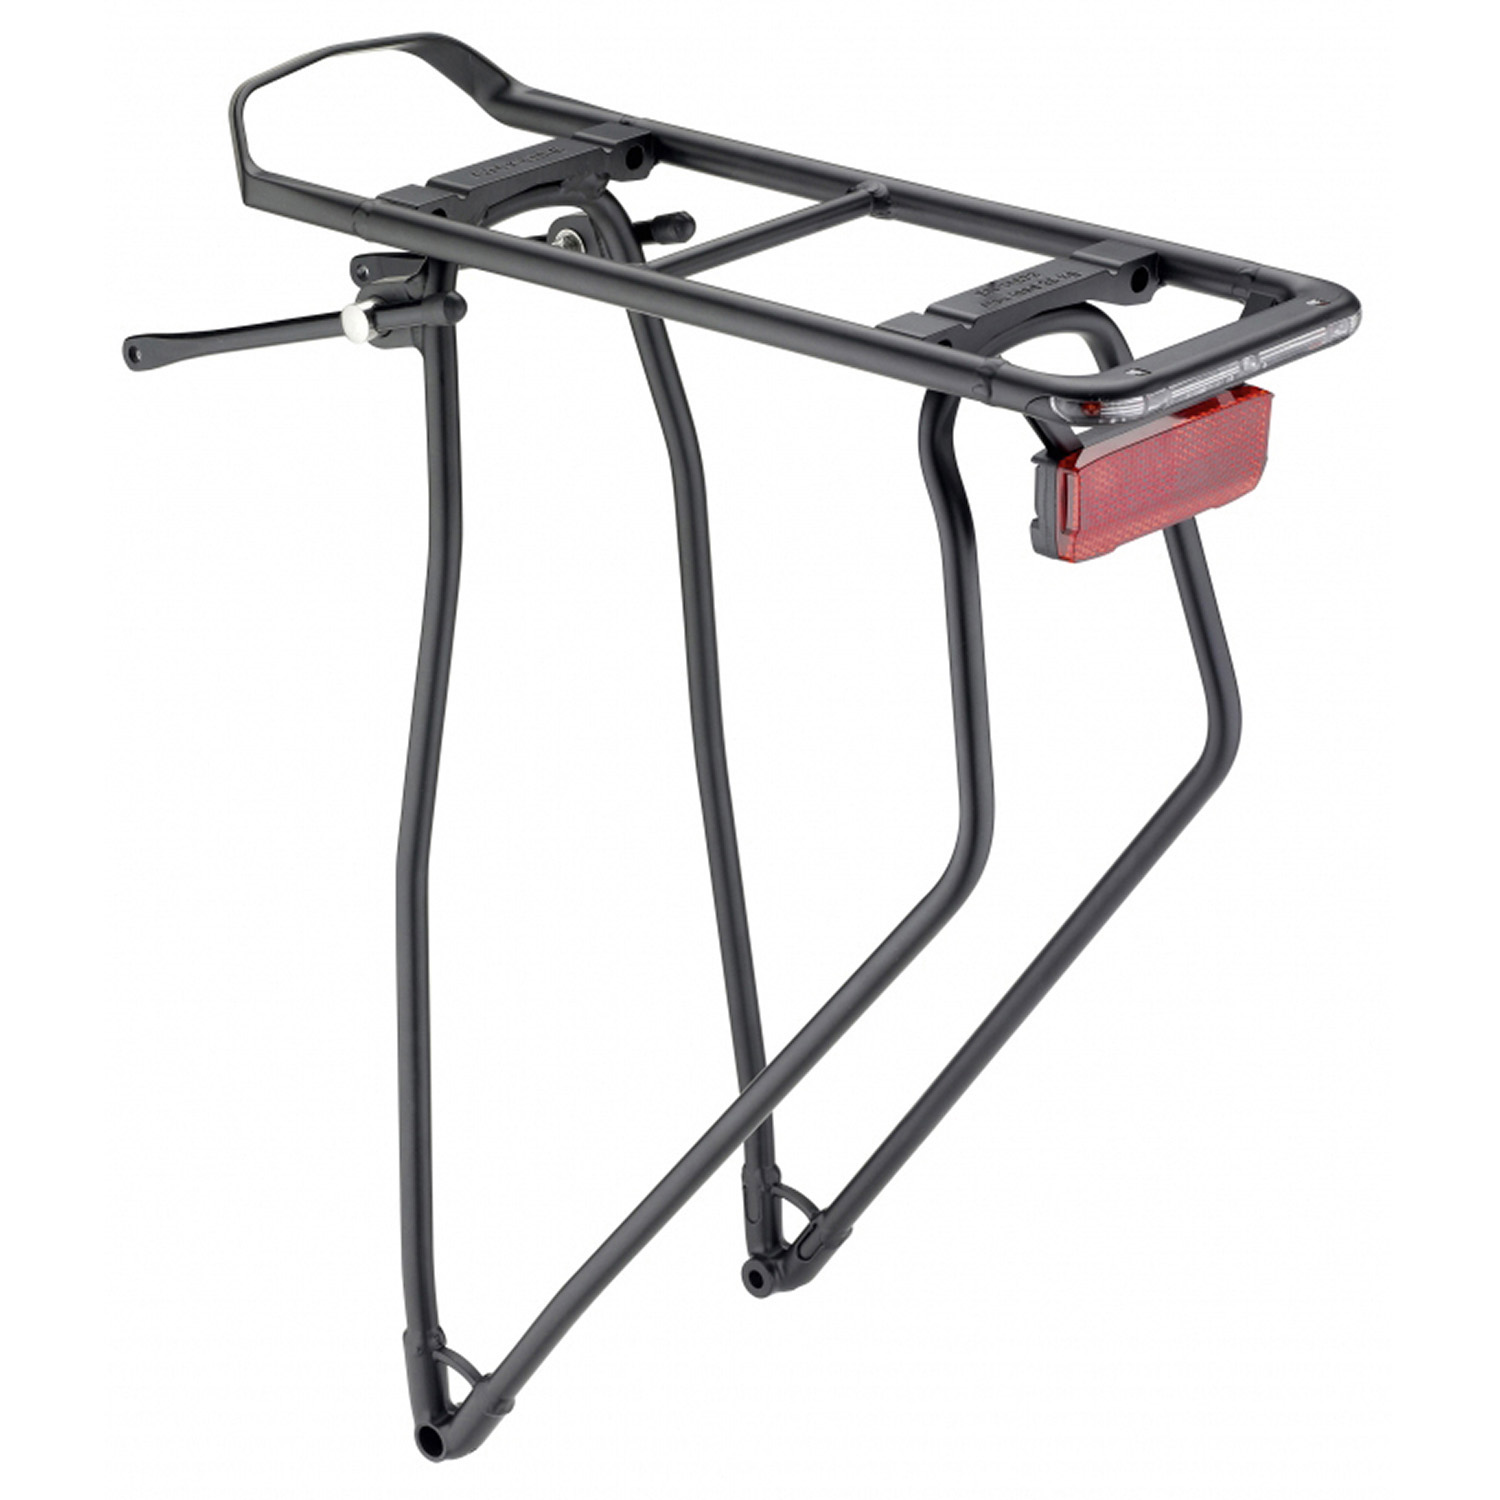 Racktime Vario Adapter, adjustable for wide and narrow Racktime racks